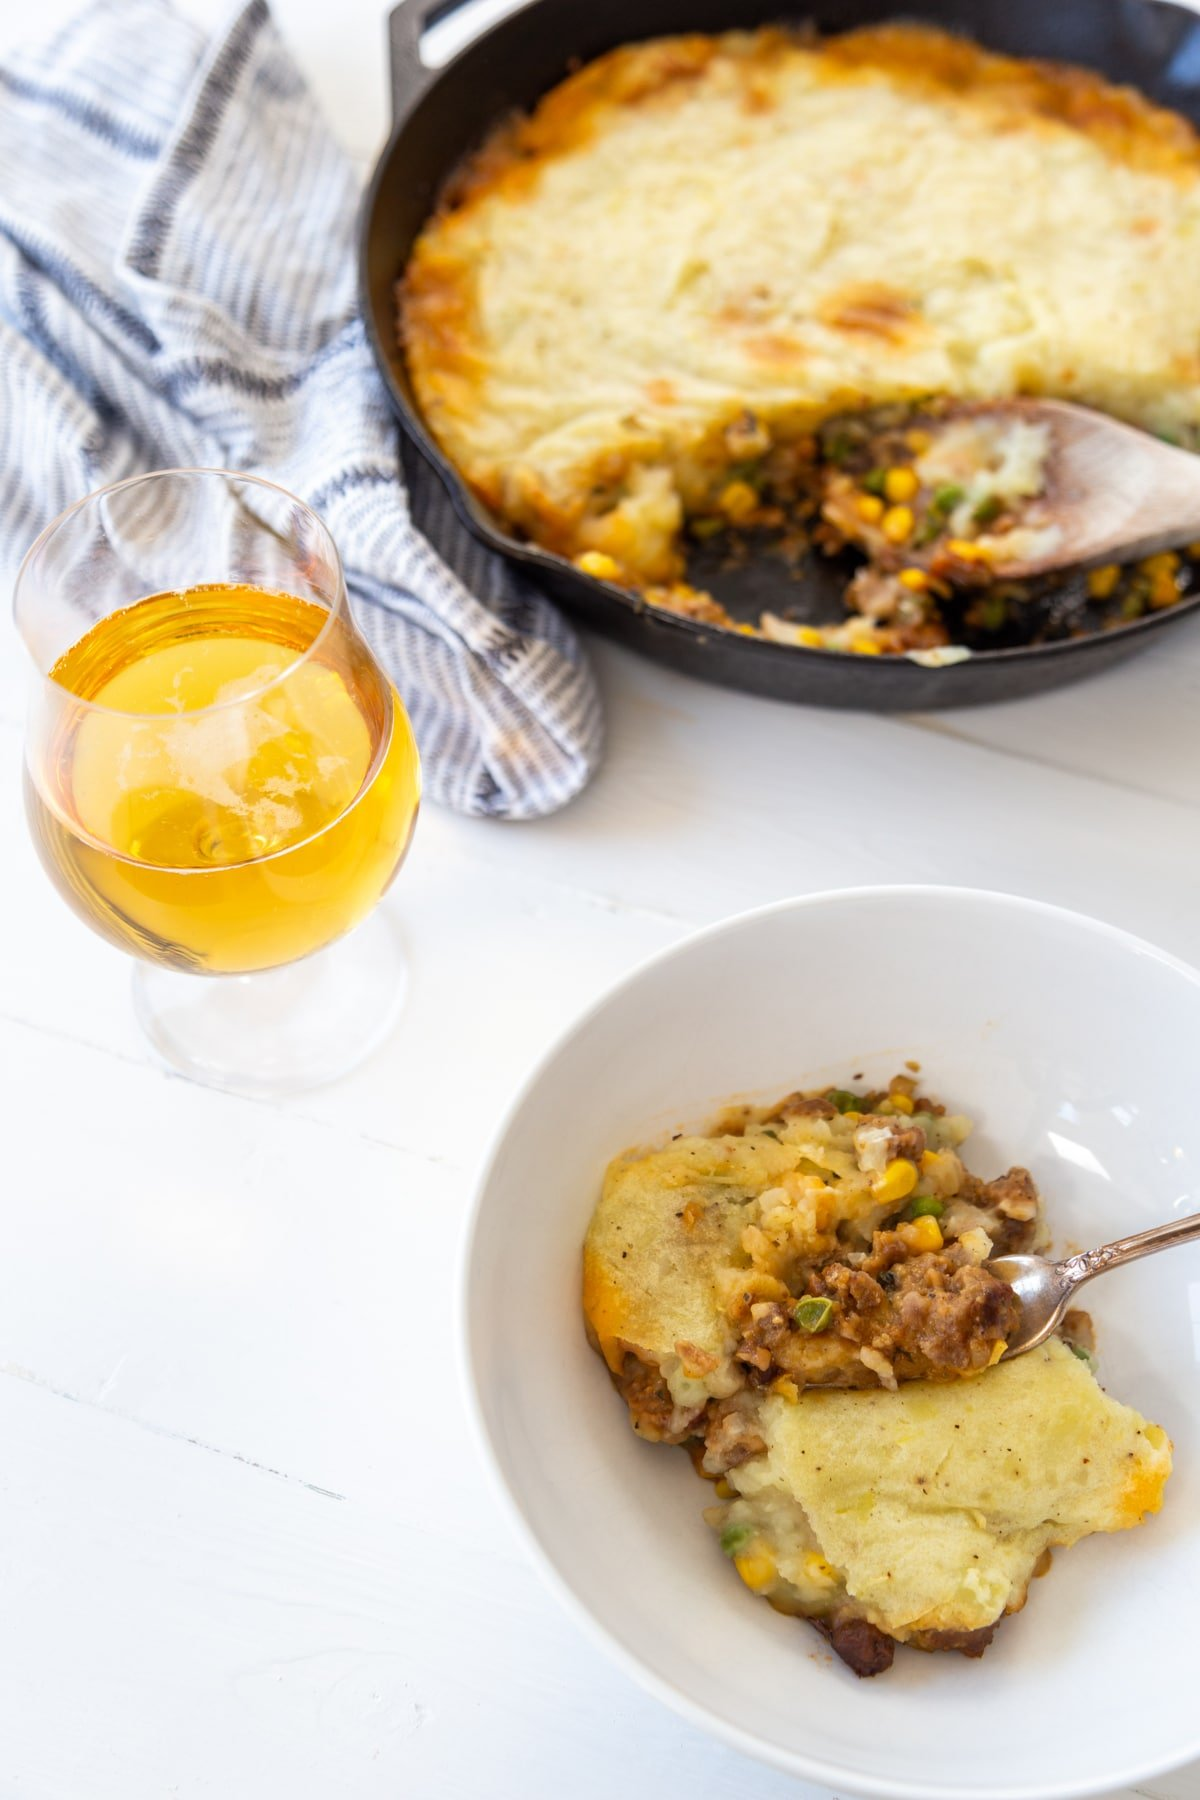 A white bowl of sheperd's pie with a fork and an iron skillet with the pie and a glass of beer in the background.